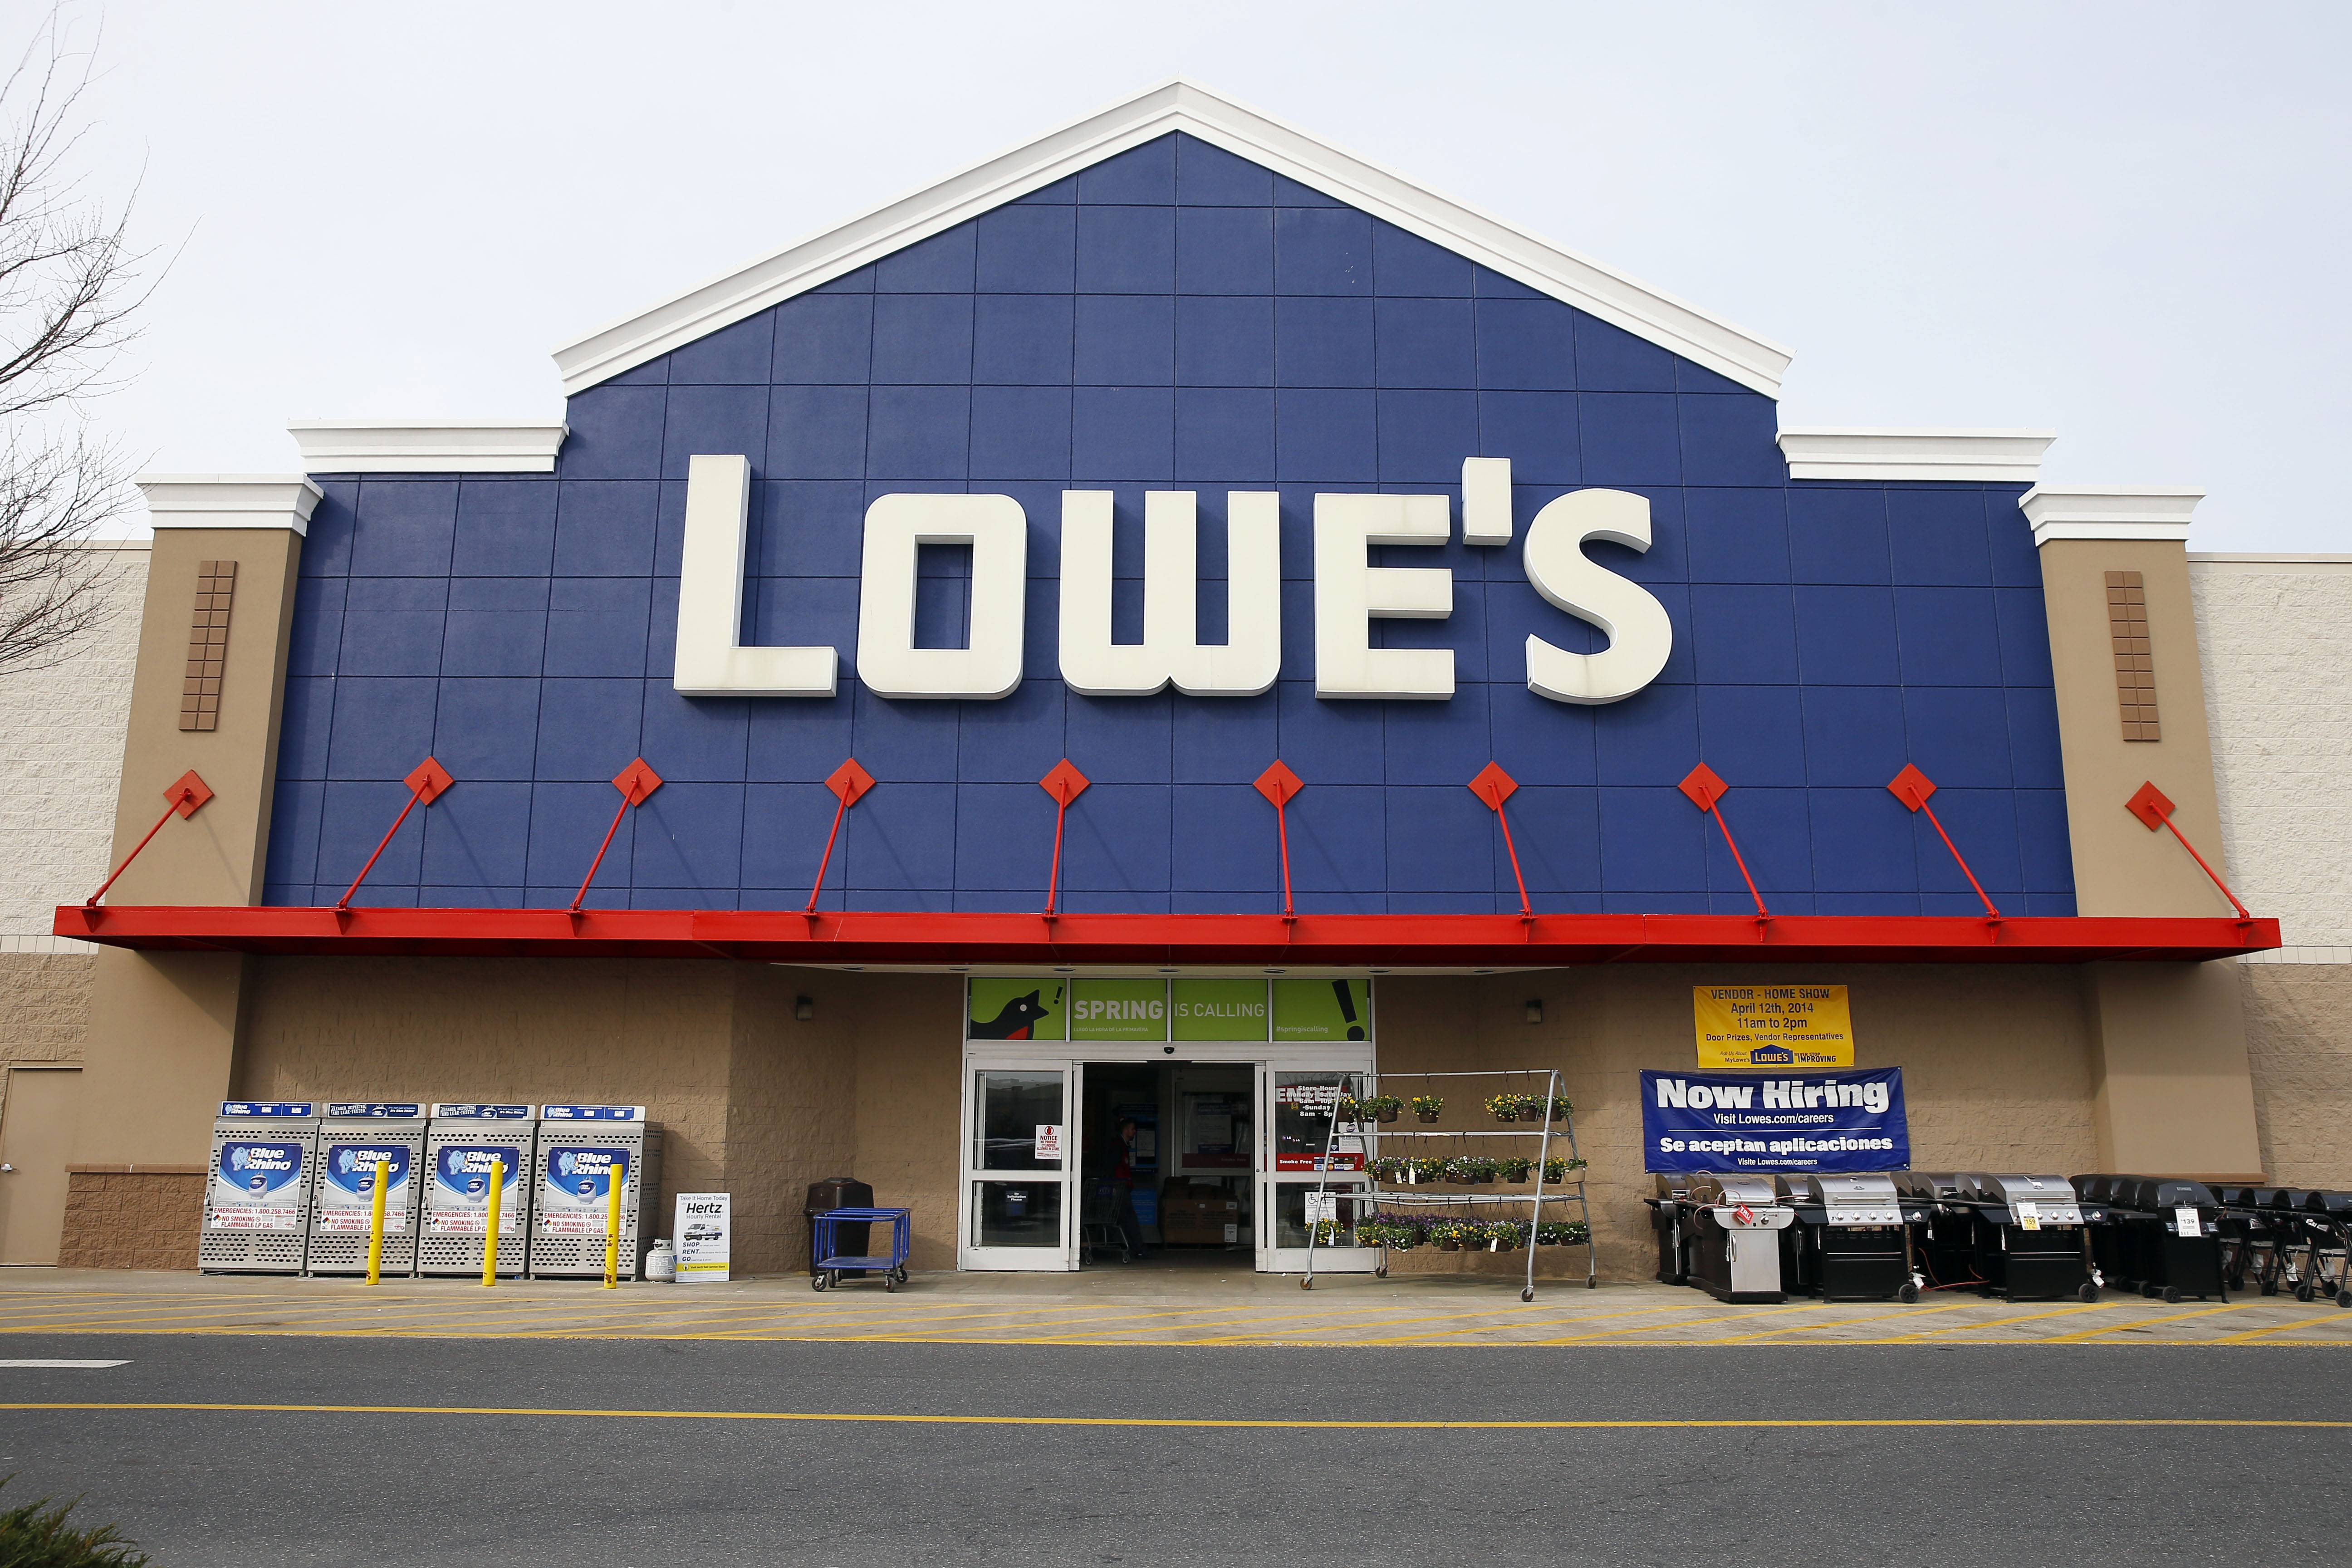 Home-improvement retailer Lowe's fiscal first-quarter net income climbed 16 percent, bolstered in part by a lower tax rate.